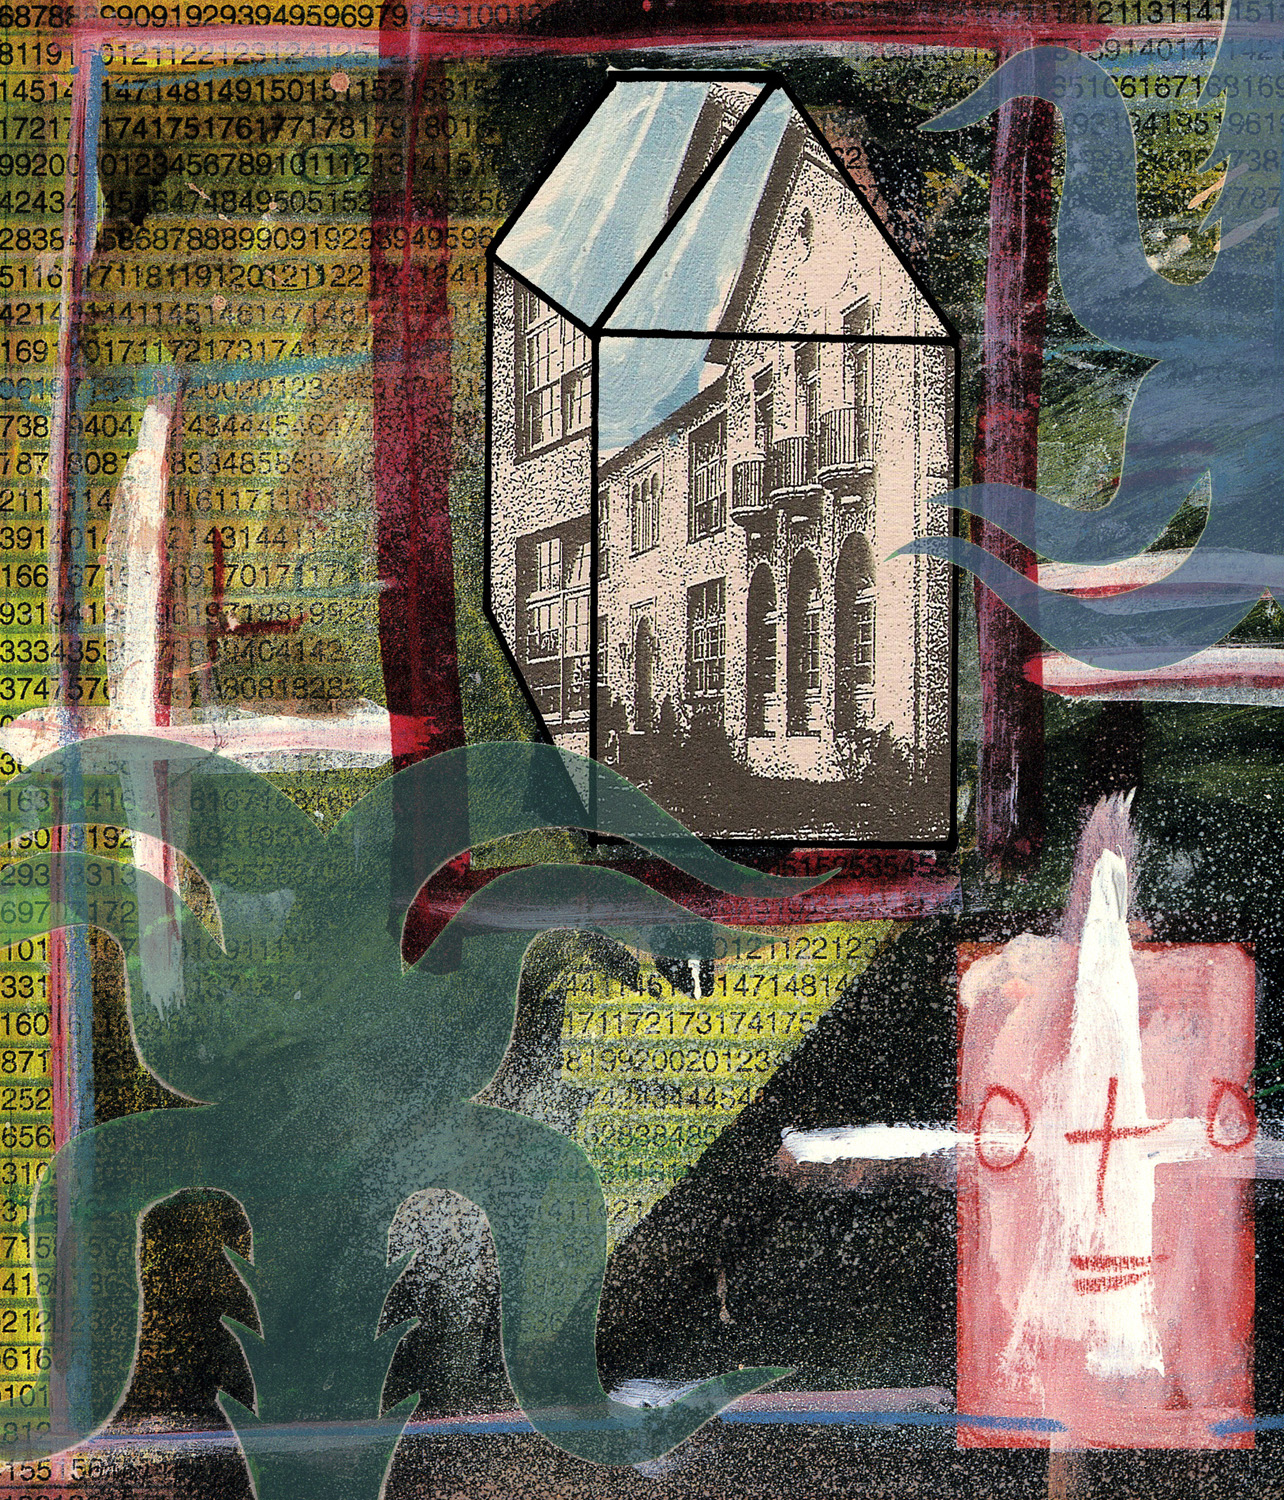 Reflective Dwelling, Digital Print.  32 x 28 inches unframed.